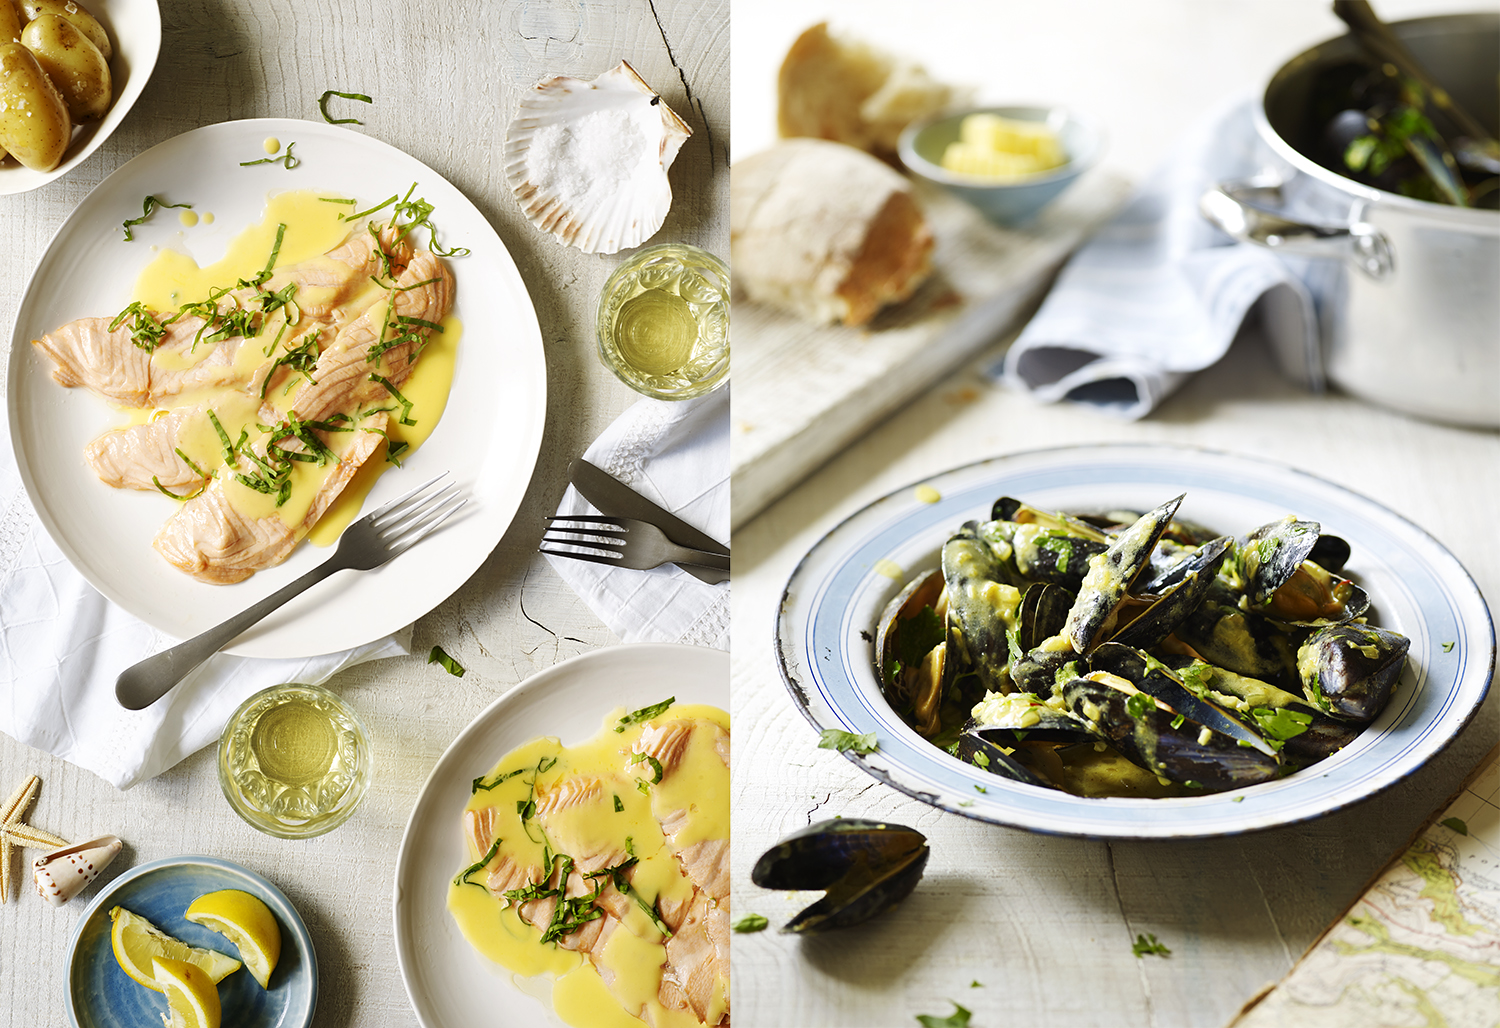 Rick Stein & The Seafood Restaurant 40th Anniversary feature in Delicious magazine - food photography, Salmon and Muscles